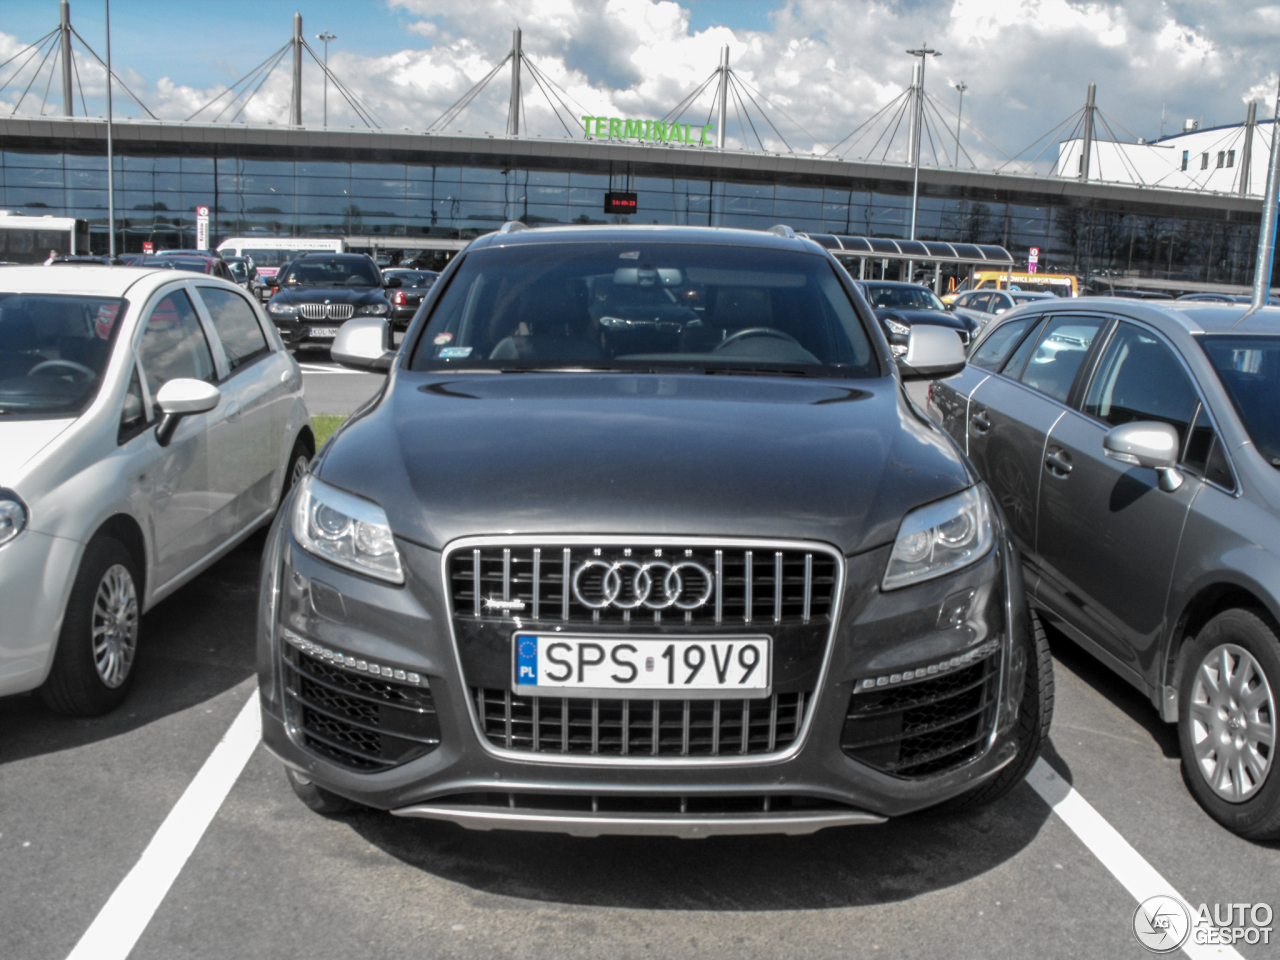 Audi Q7 V12 TDI - 29 January 2017 - Autogespot